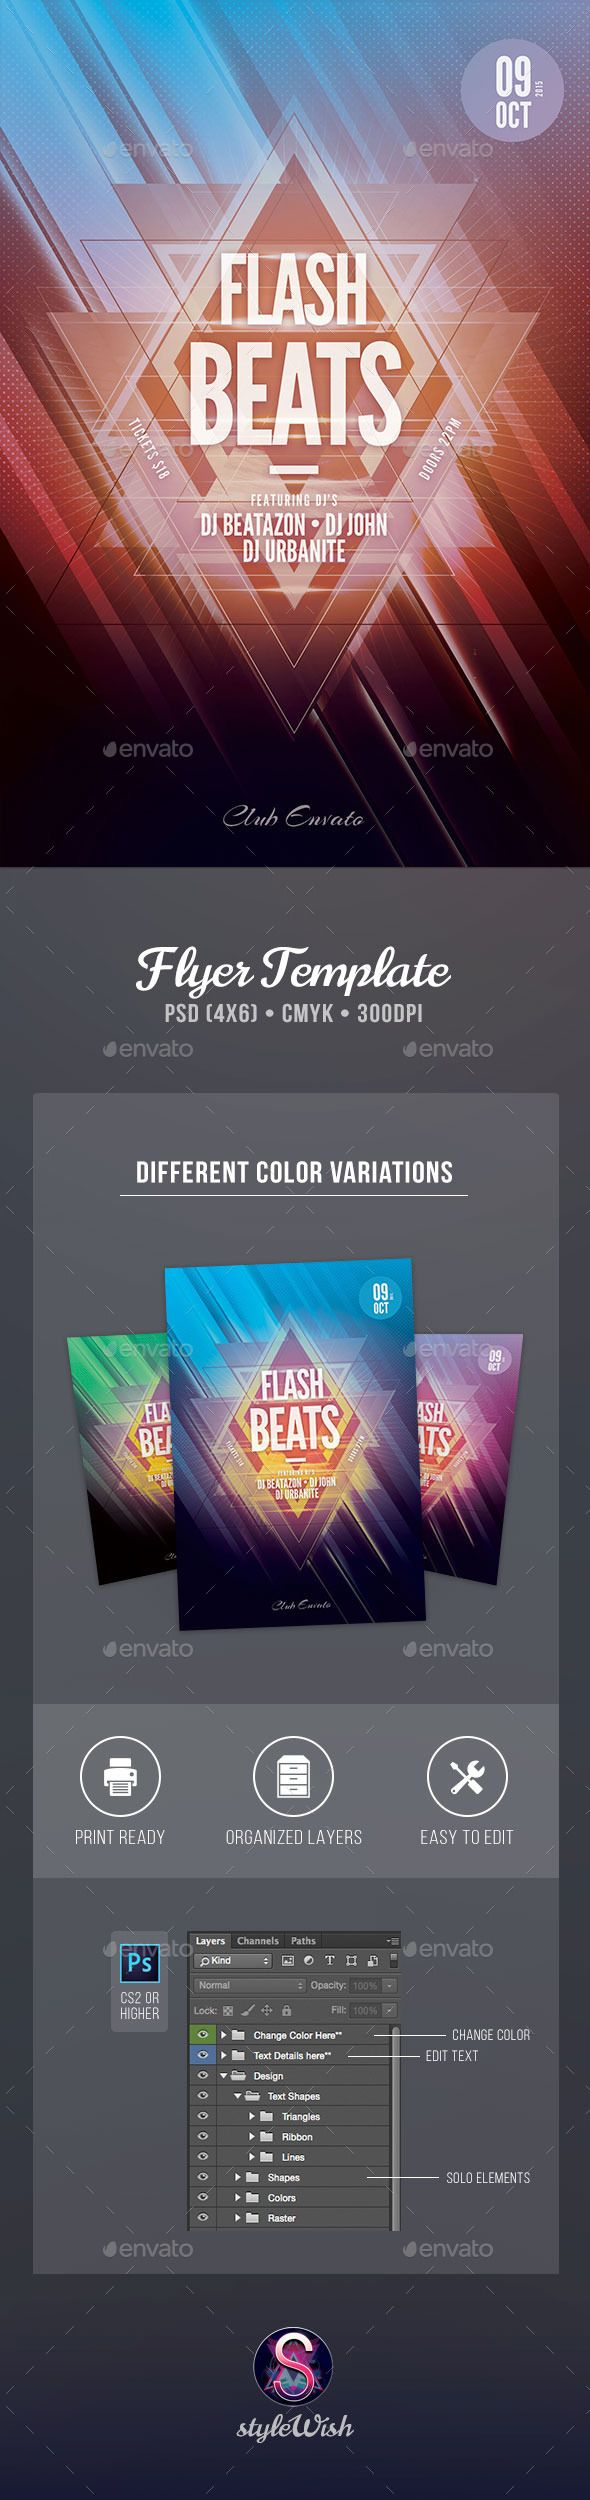 Flash Beats Flyer Template #design Download: http://graphicriver.net/item/flash-beats-flyer/12854235?ref=ksioks